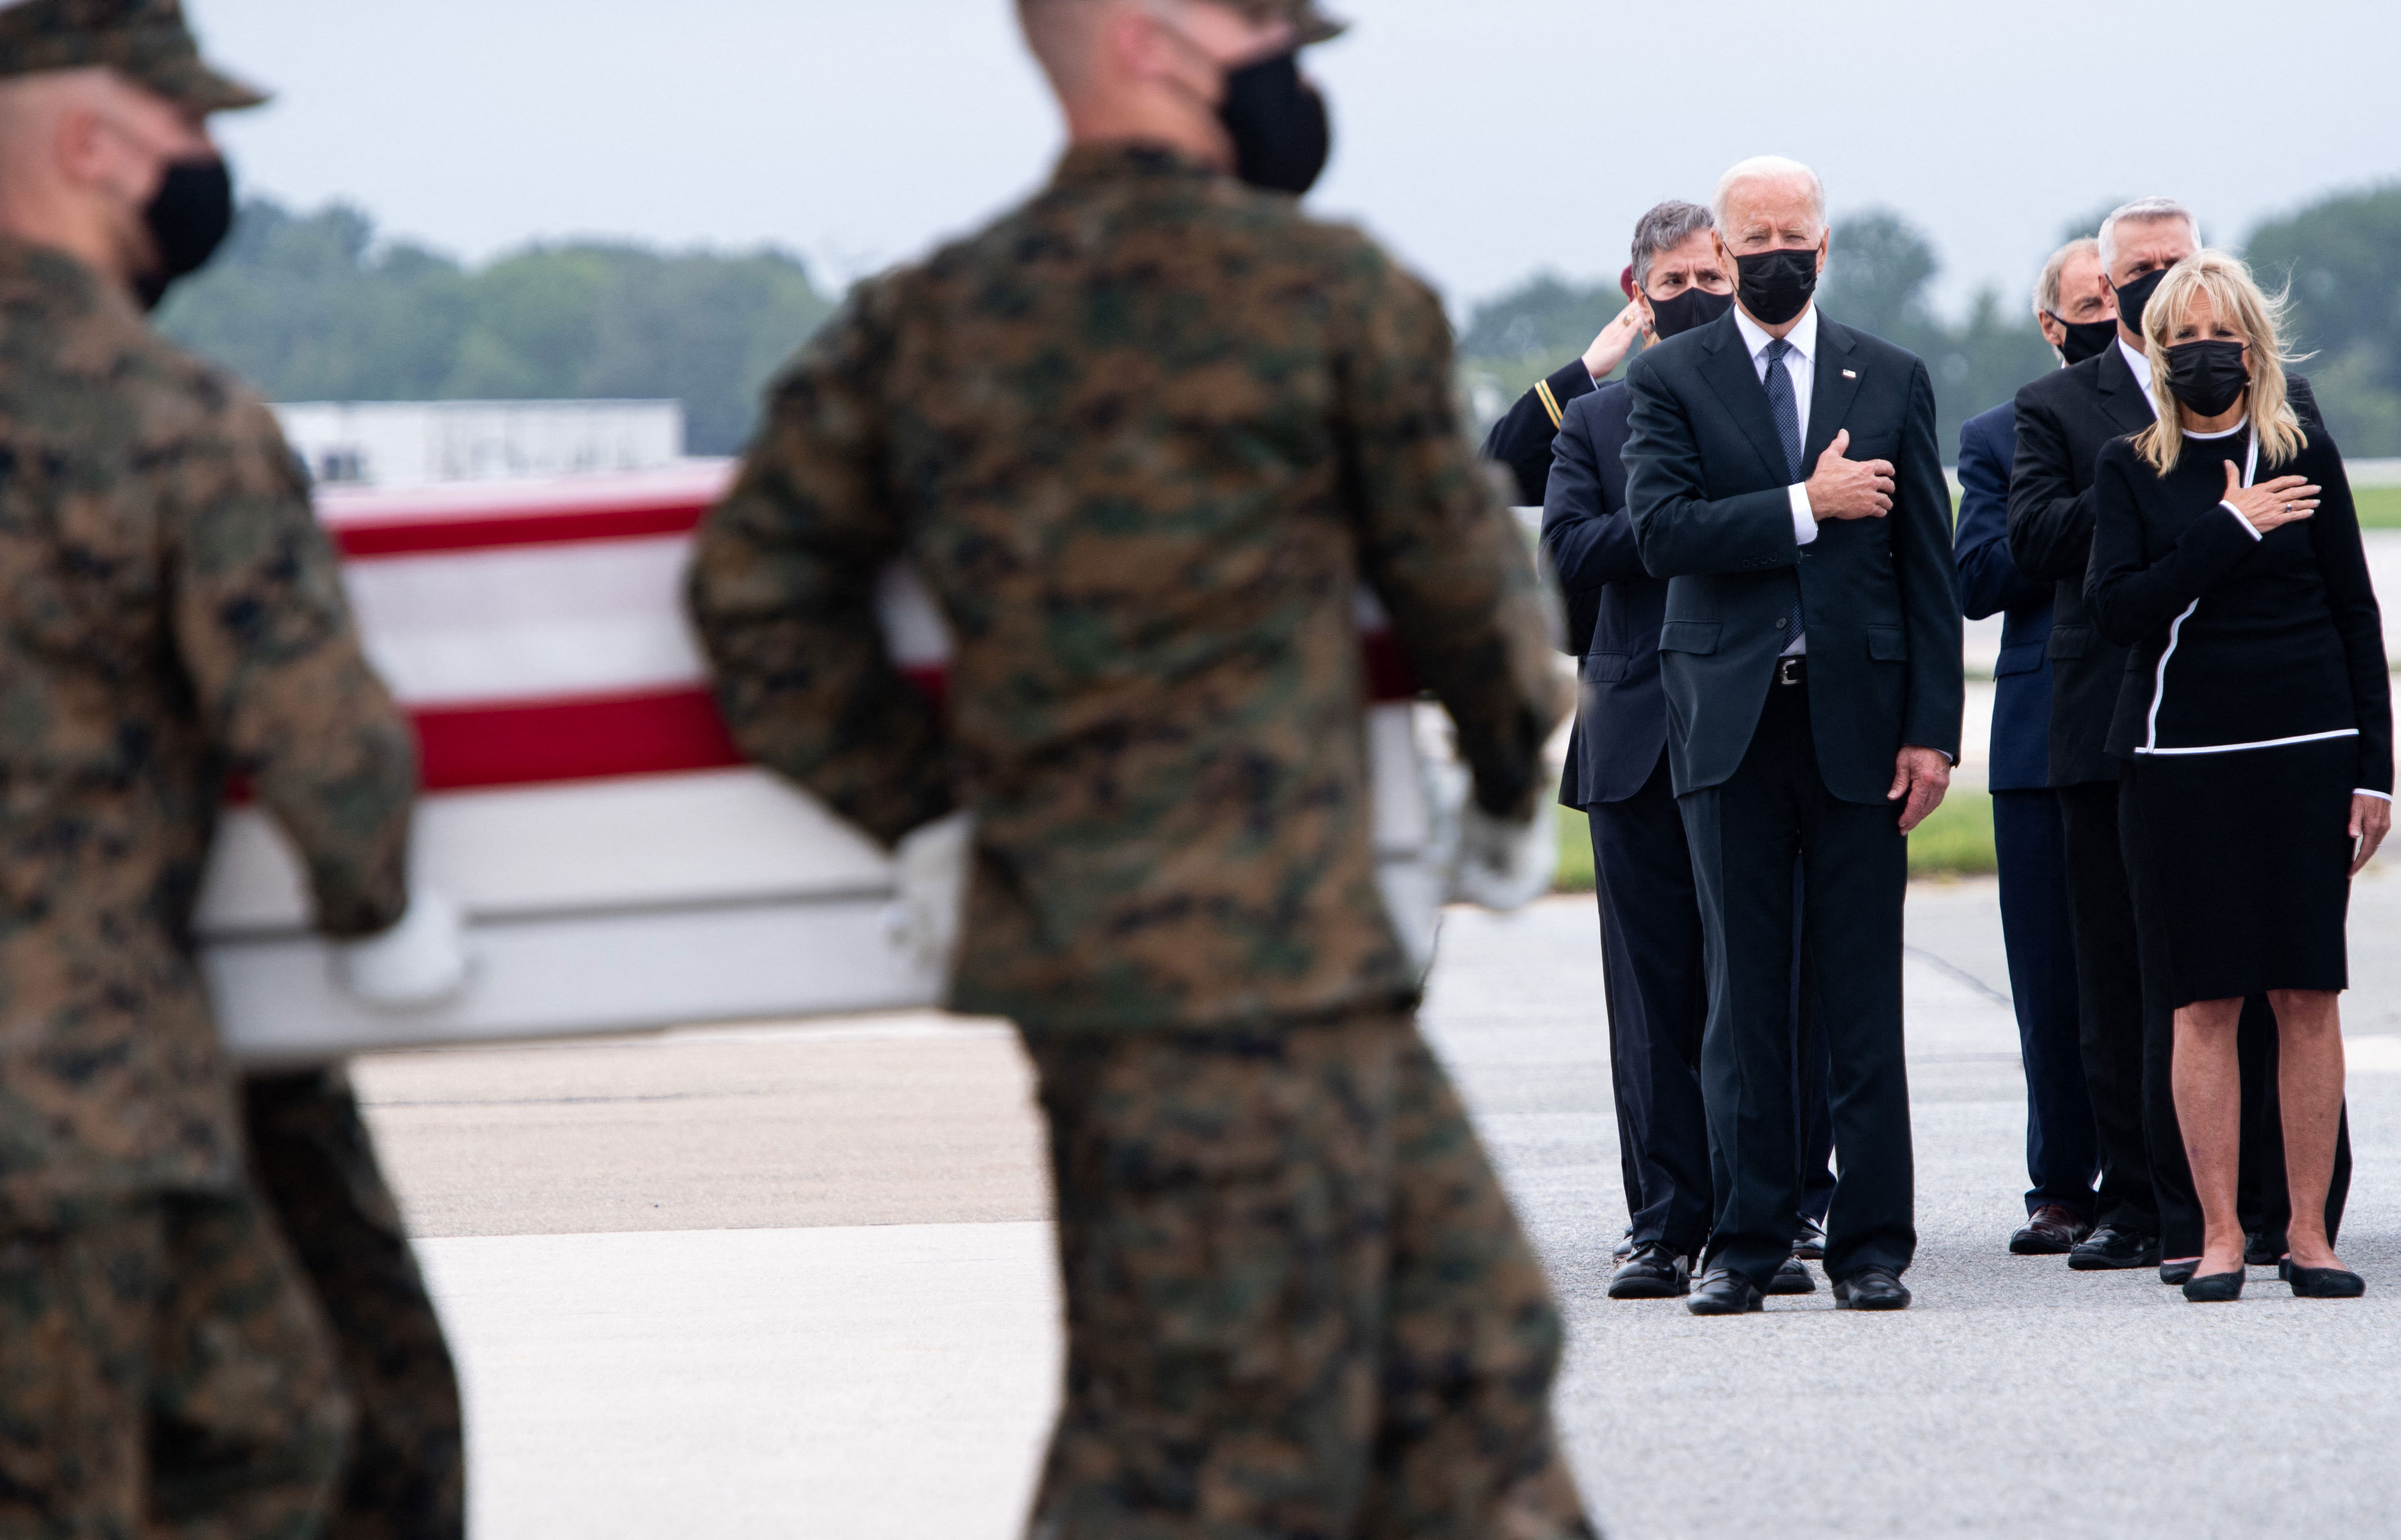 US President Joe Biden and first lady Jill Biden attend the dignified transfer of 13 service members at Dover Air Force Base in Dover, Delaware, on August 29, 2021. The service members were killed in Kabul, Afghanistan, on August 26, 2021.